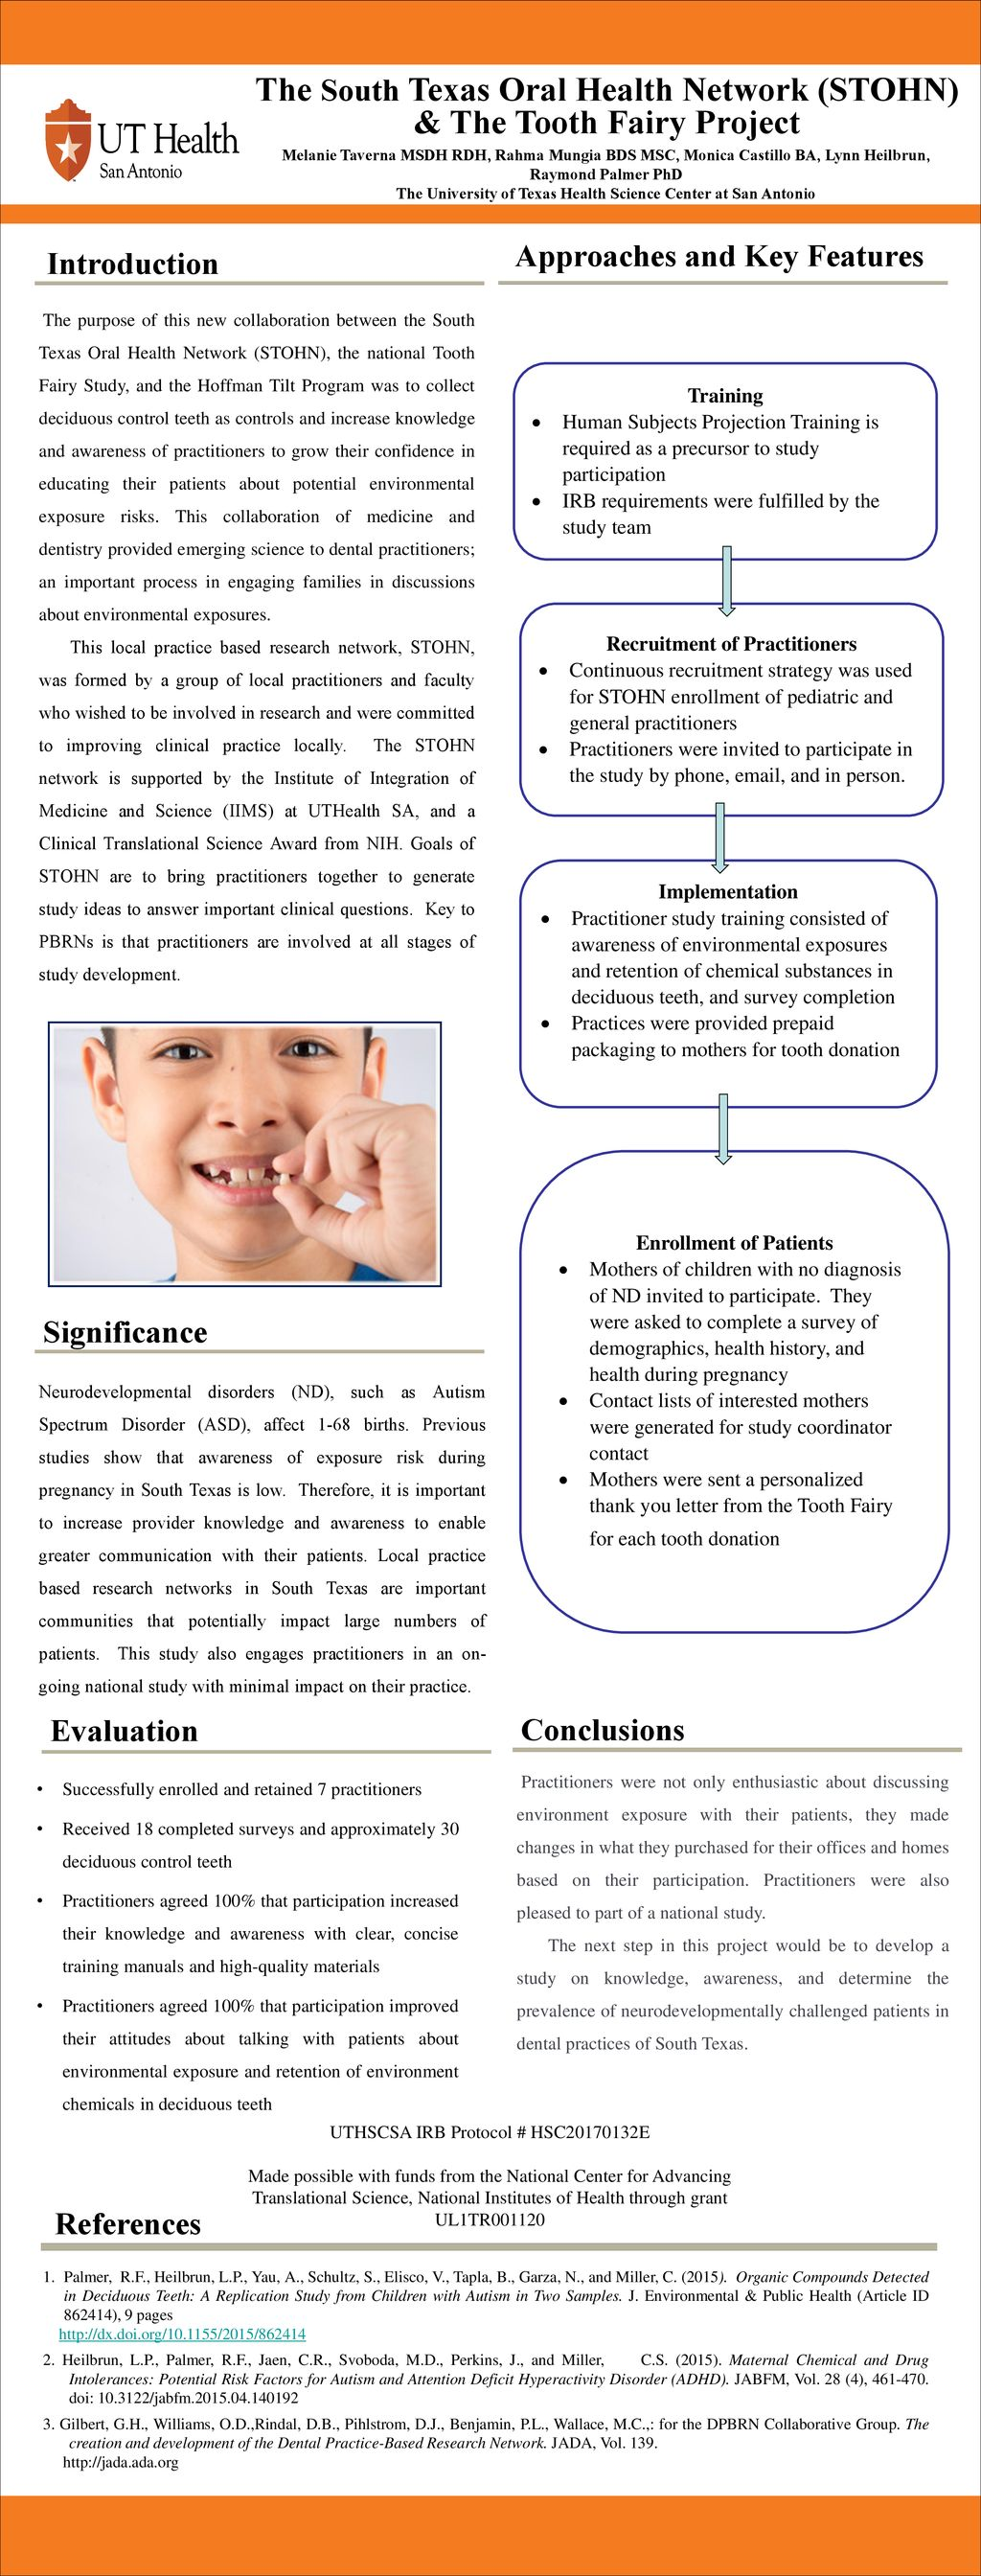 The South Texas Oral Health Network (STOHN) & The Tooth